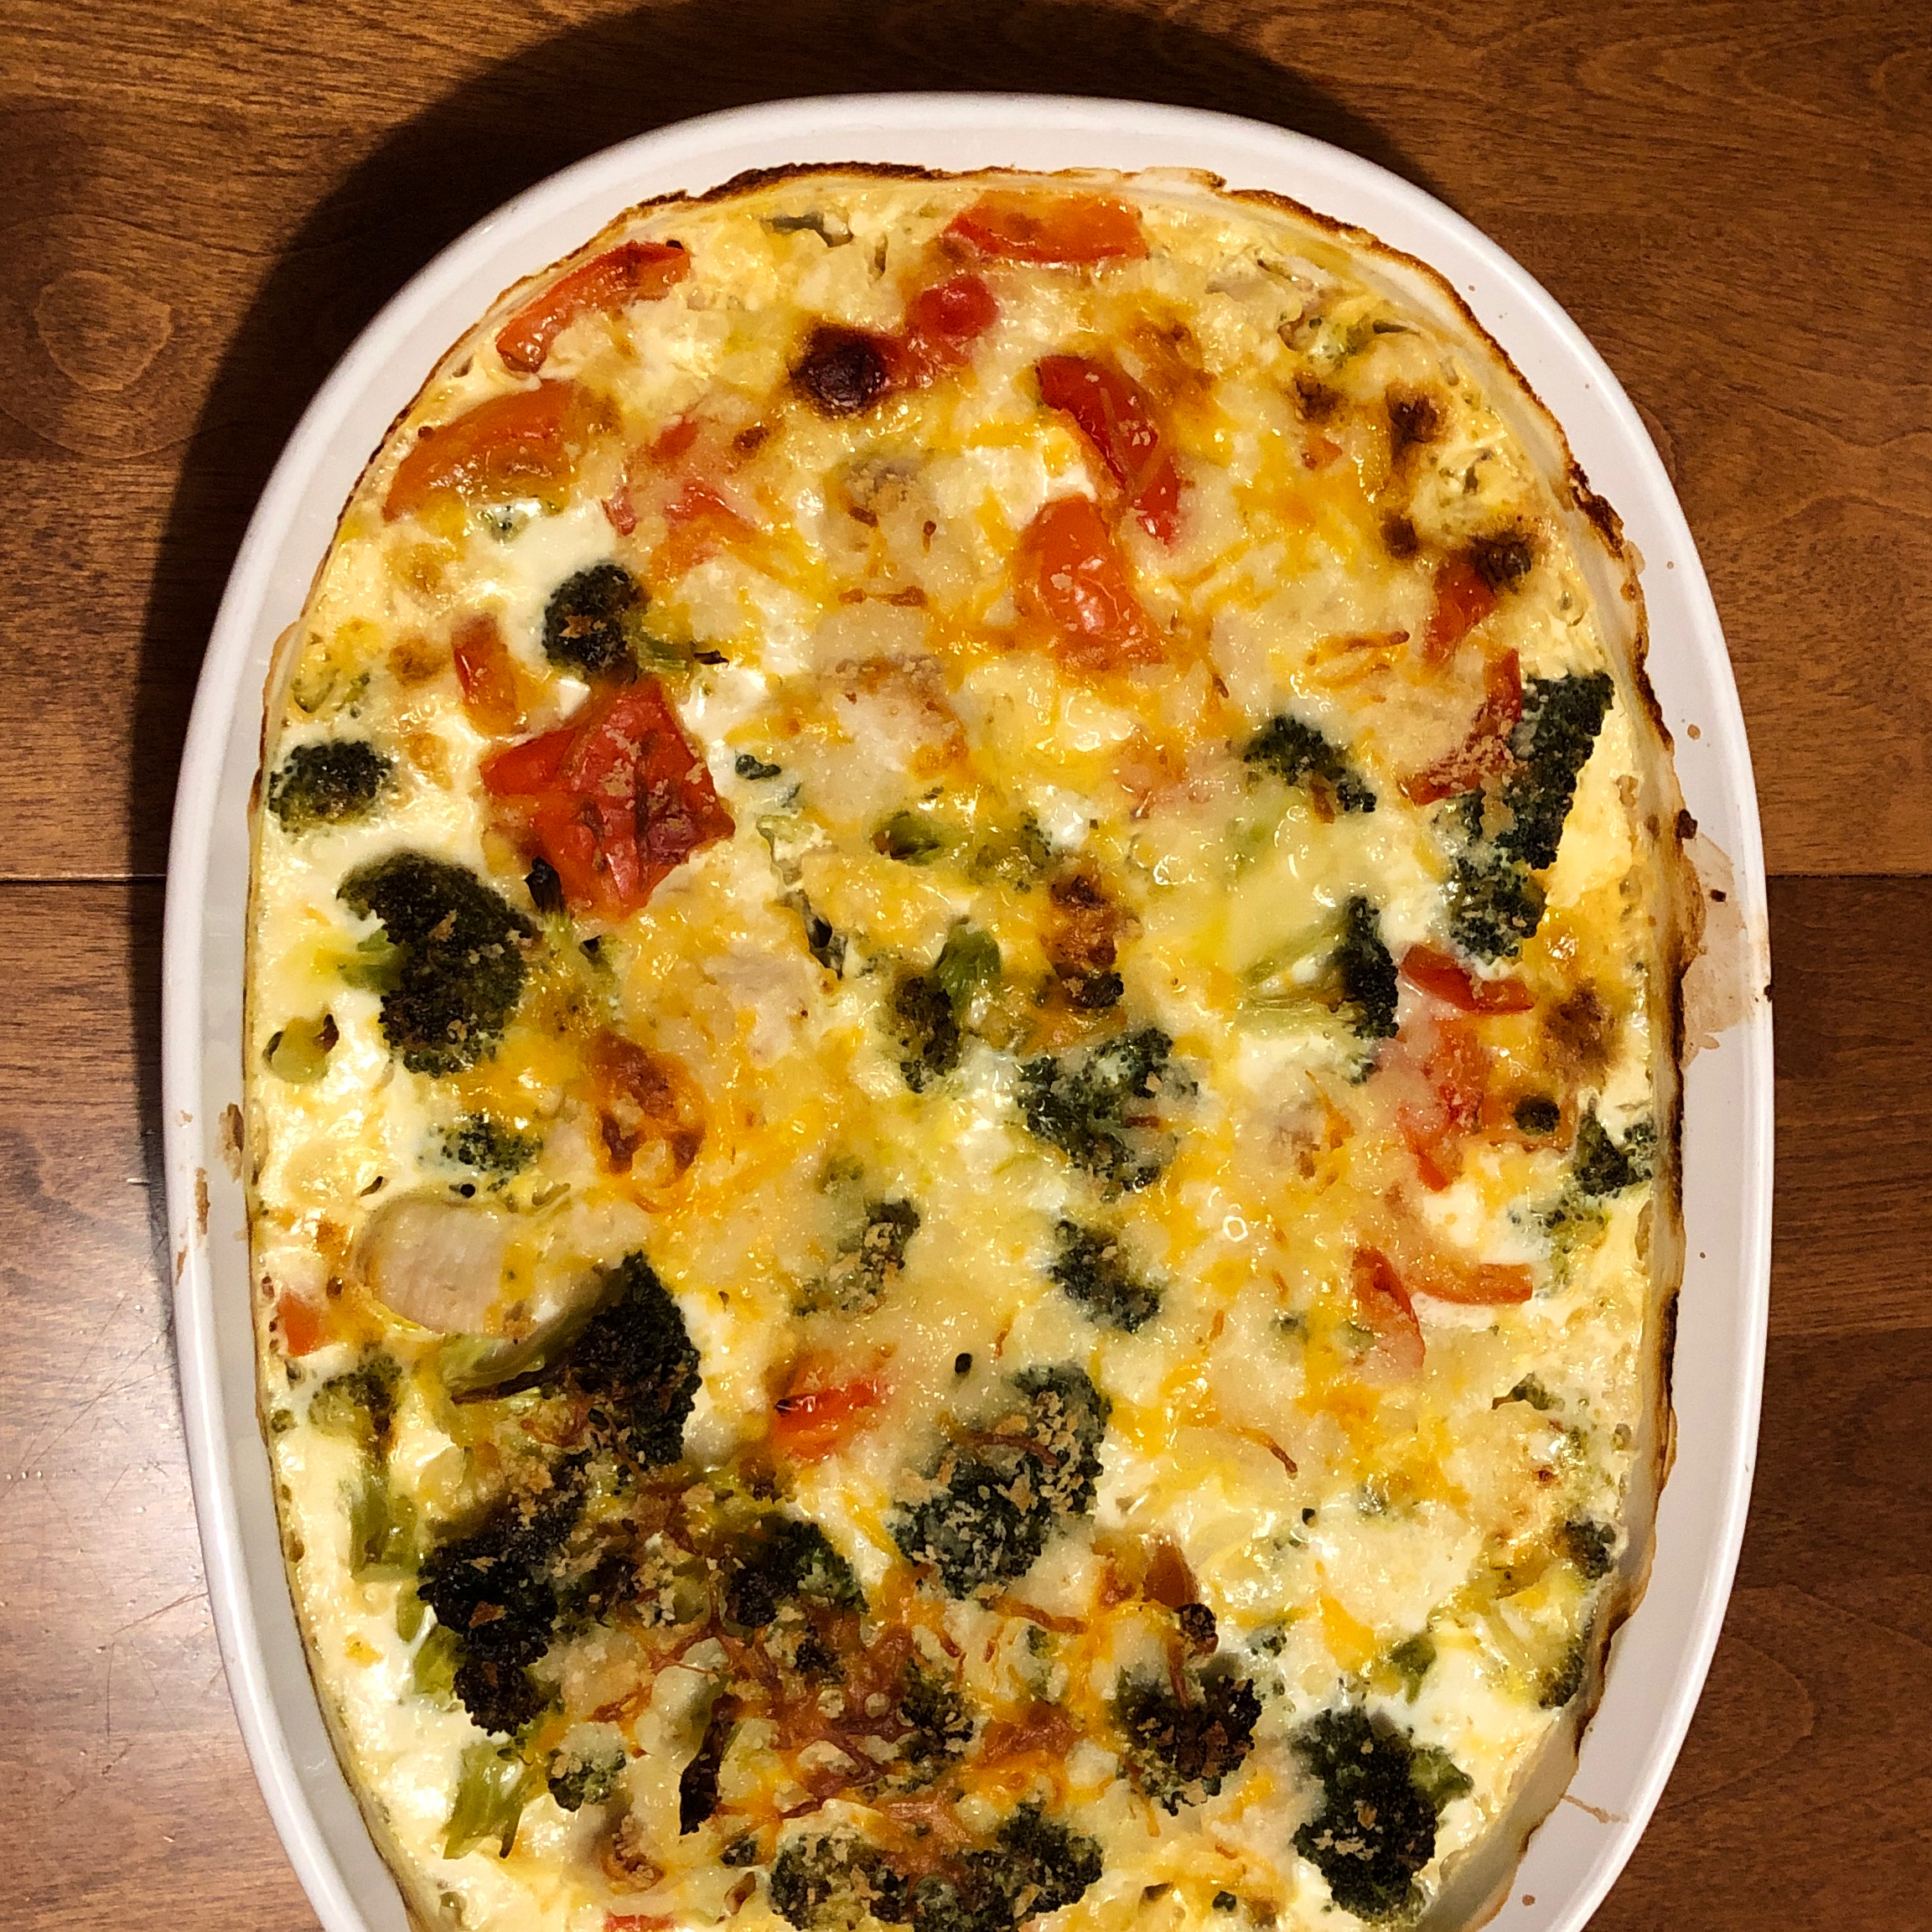 Cheddar Broccoli and Chicken Casserole from Country Crock(R) Country Crock